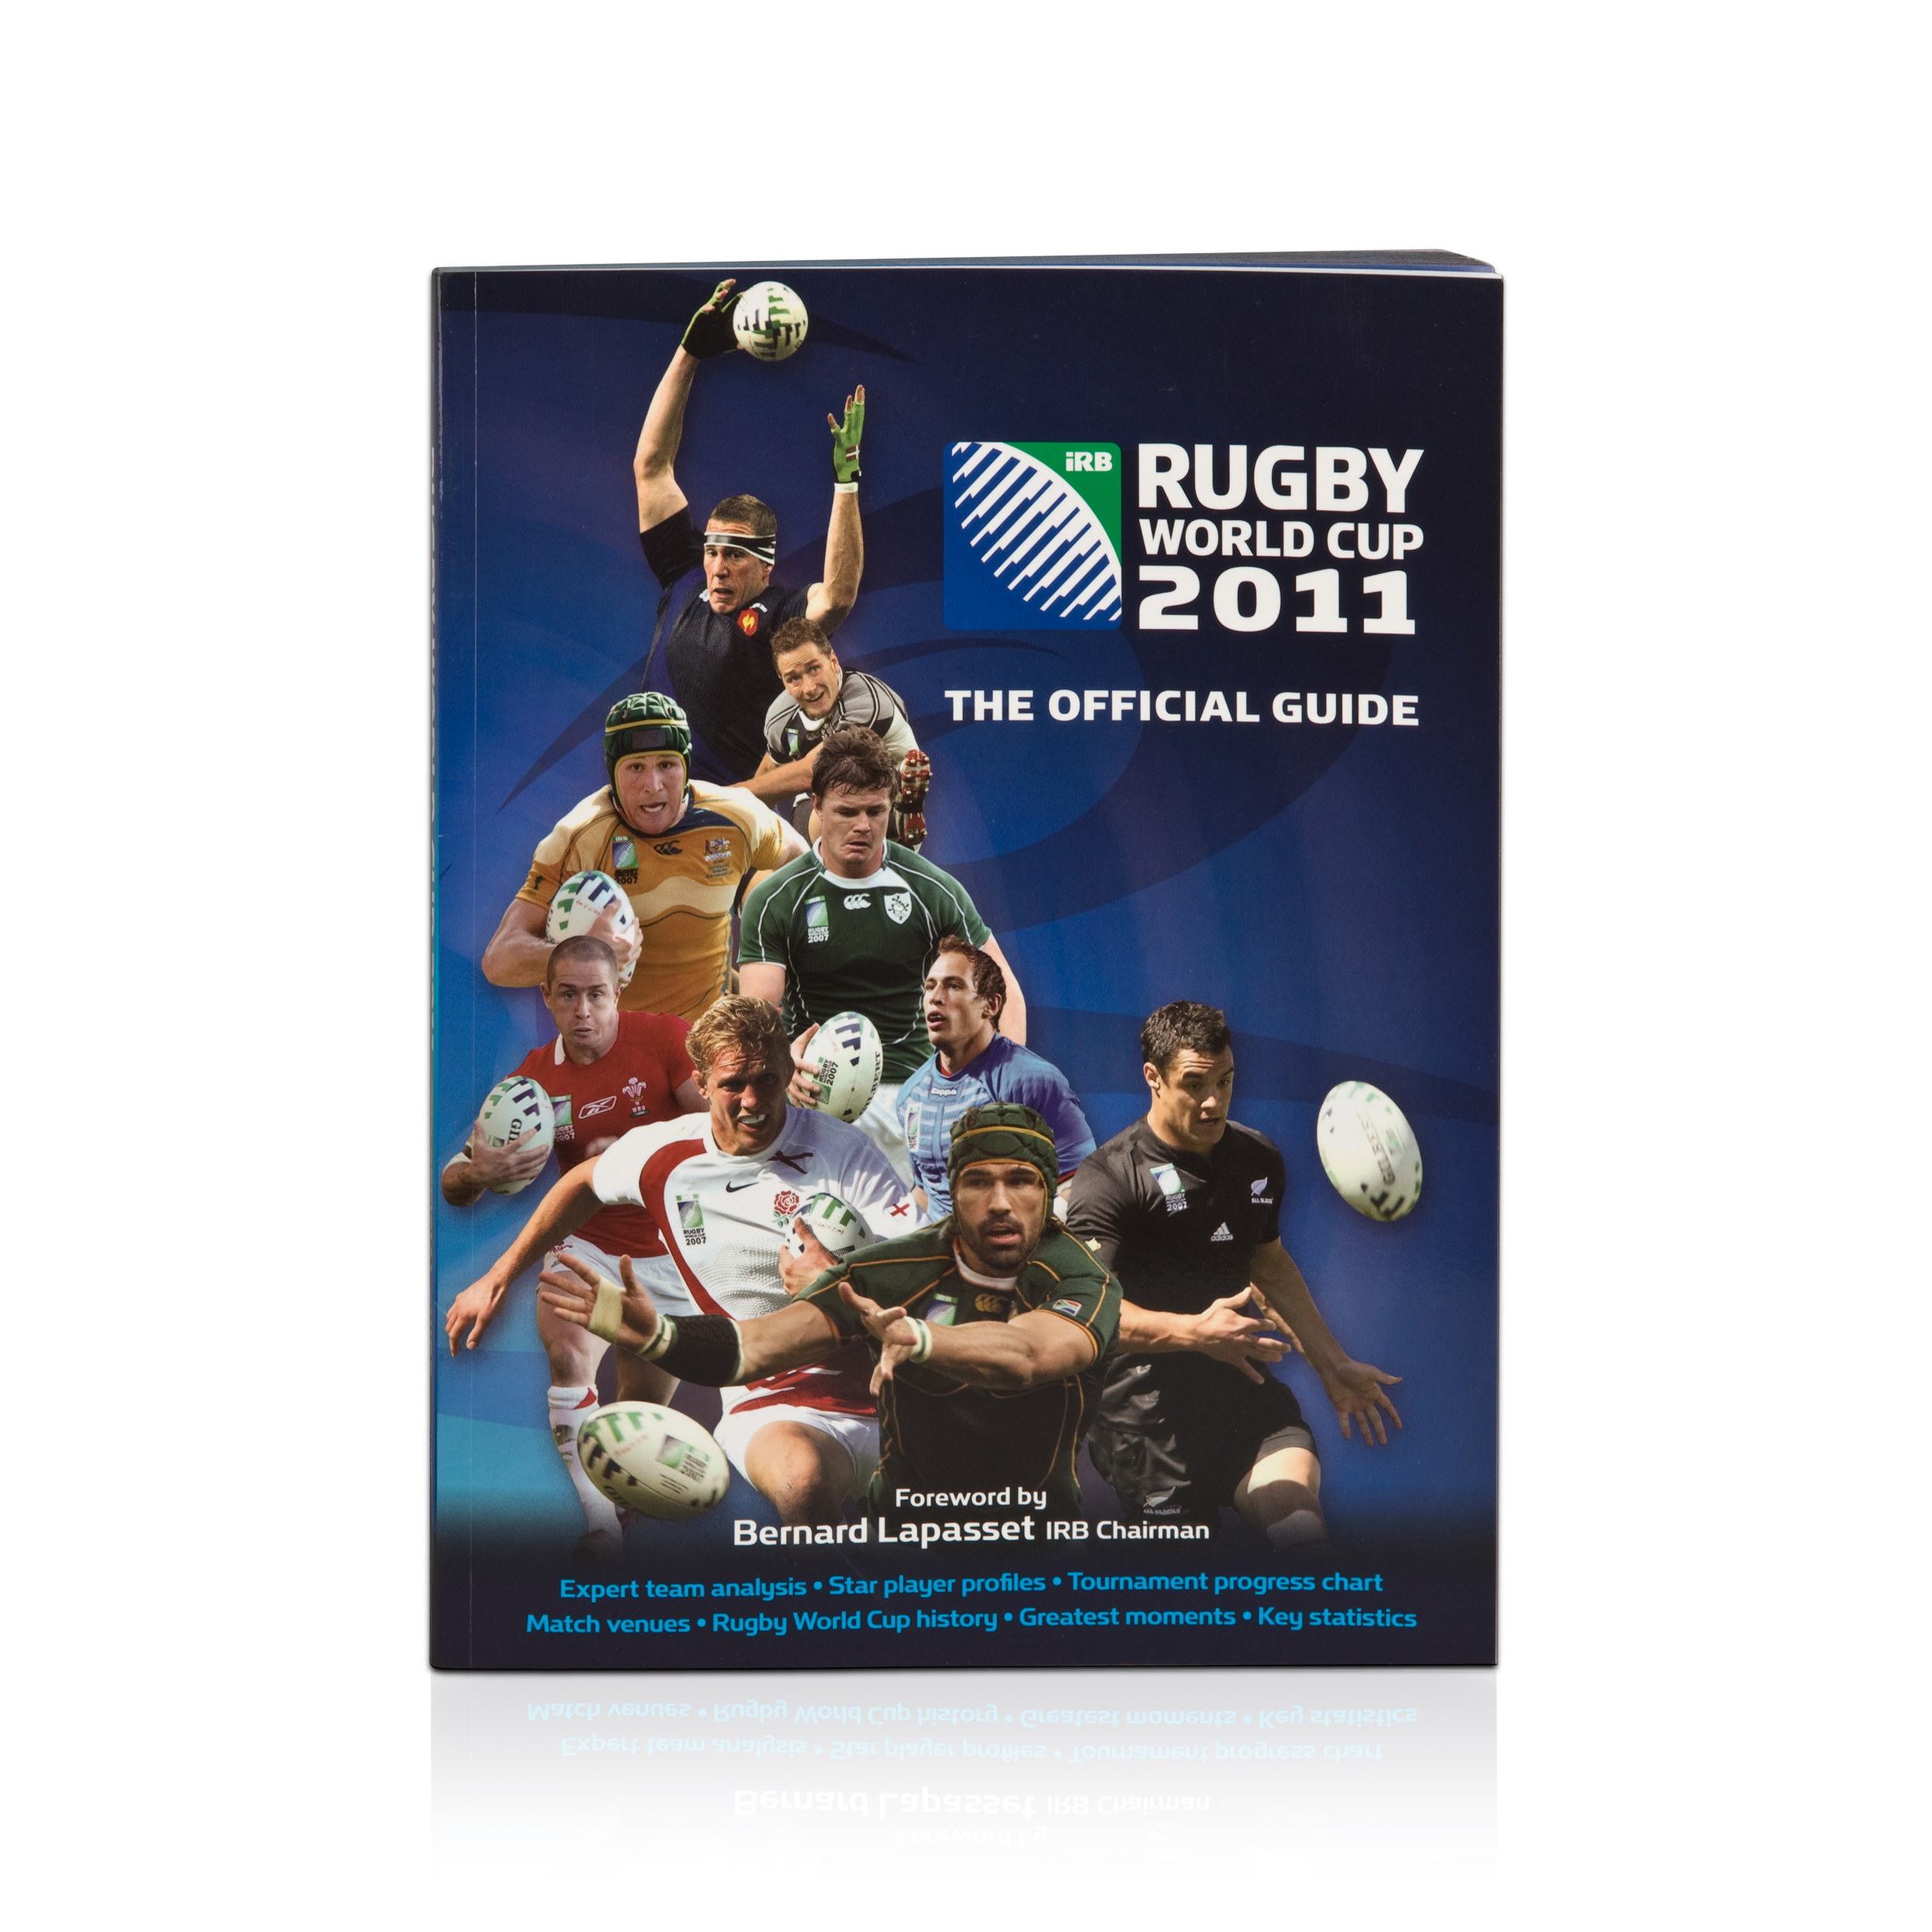 IRB Rugby World Cup Official Guide 2011